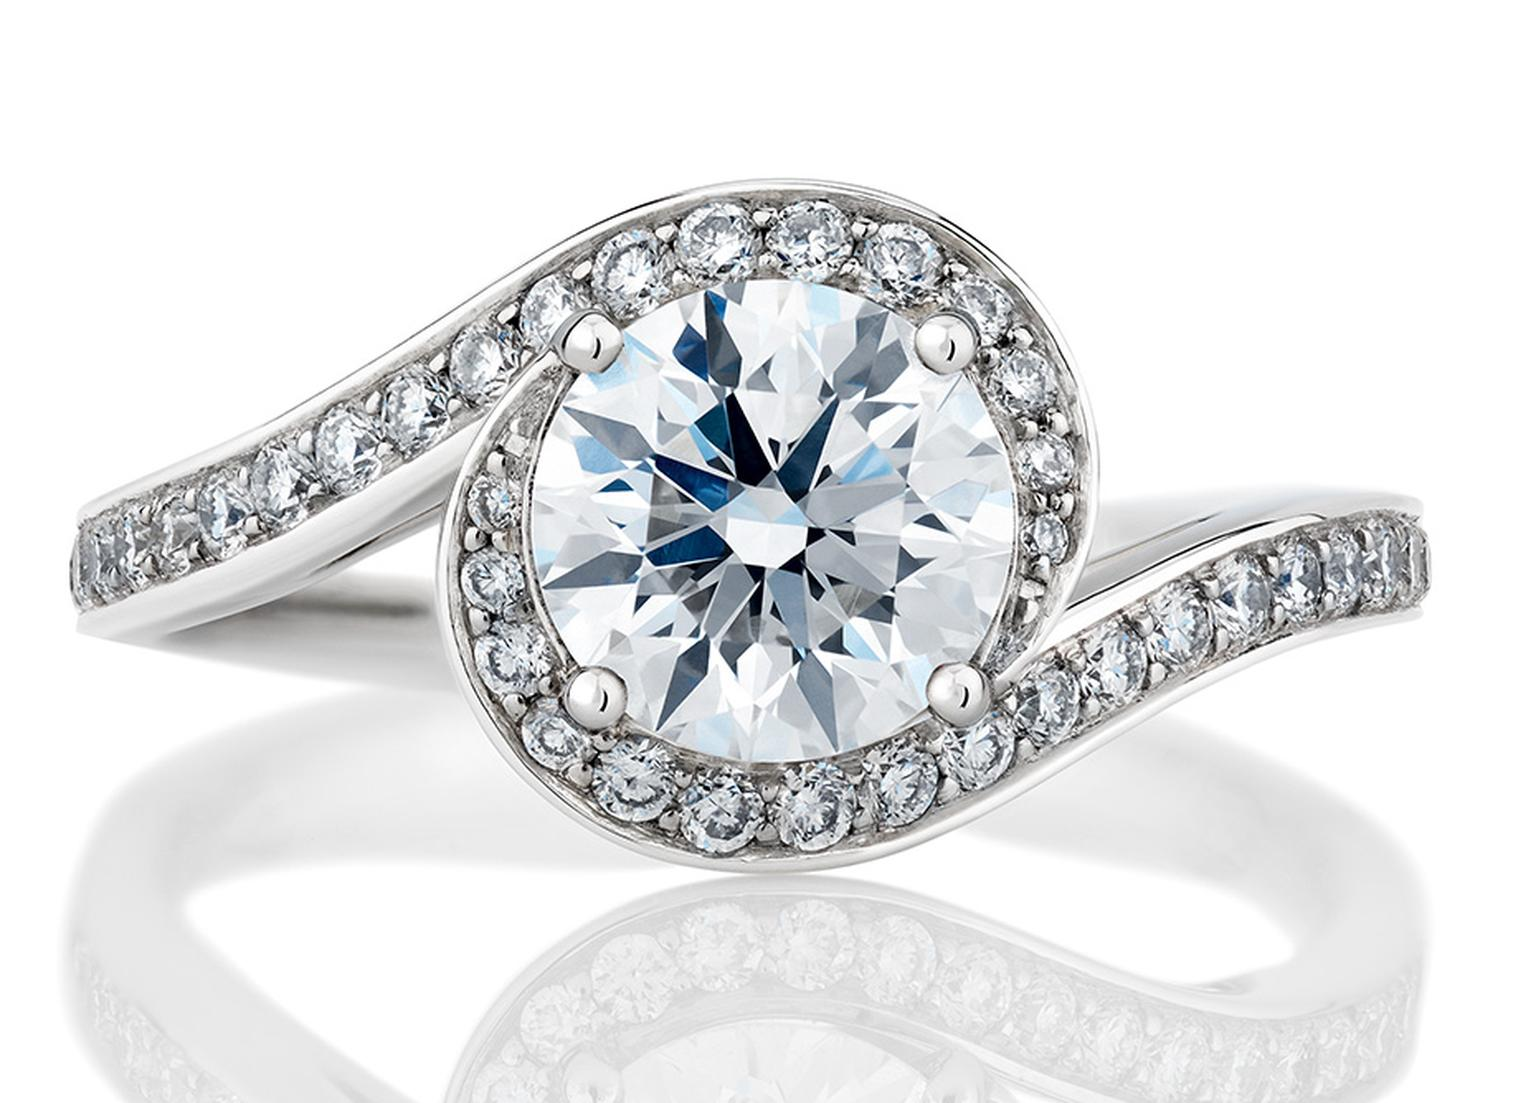 De Beers' Caress Solitaire Engagement Ring Incorporates A Curved Diamond  Pave´ Band That Appears